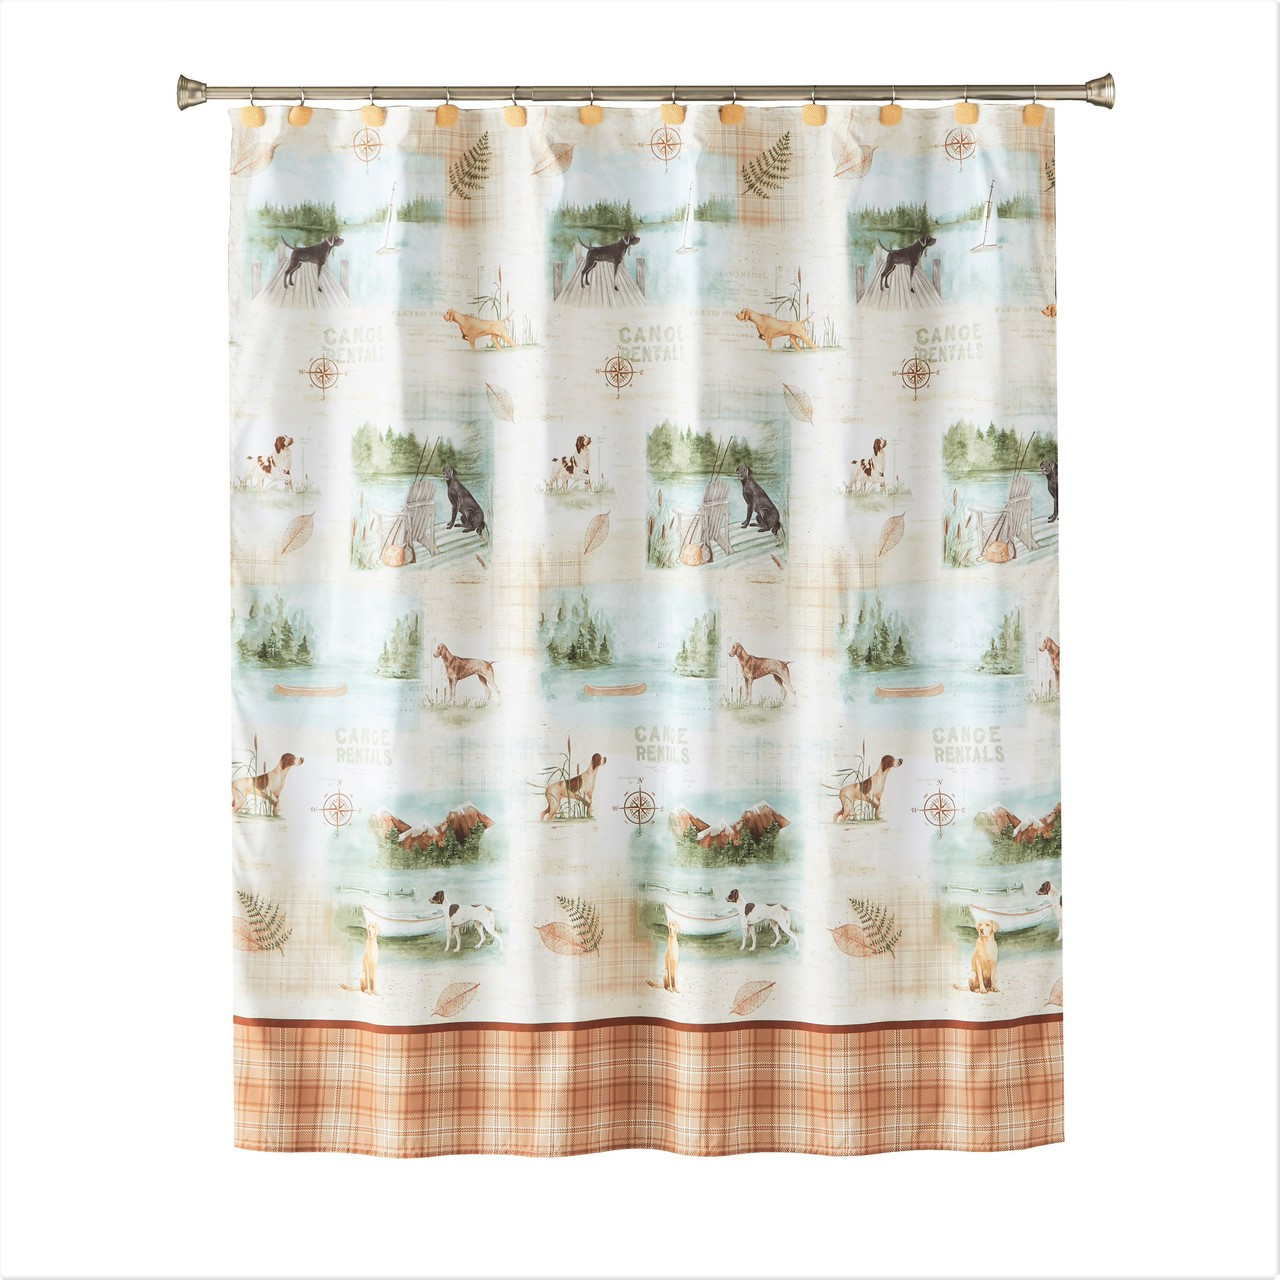 Adirondack Dogs Shower Curtain From Saturday Knight